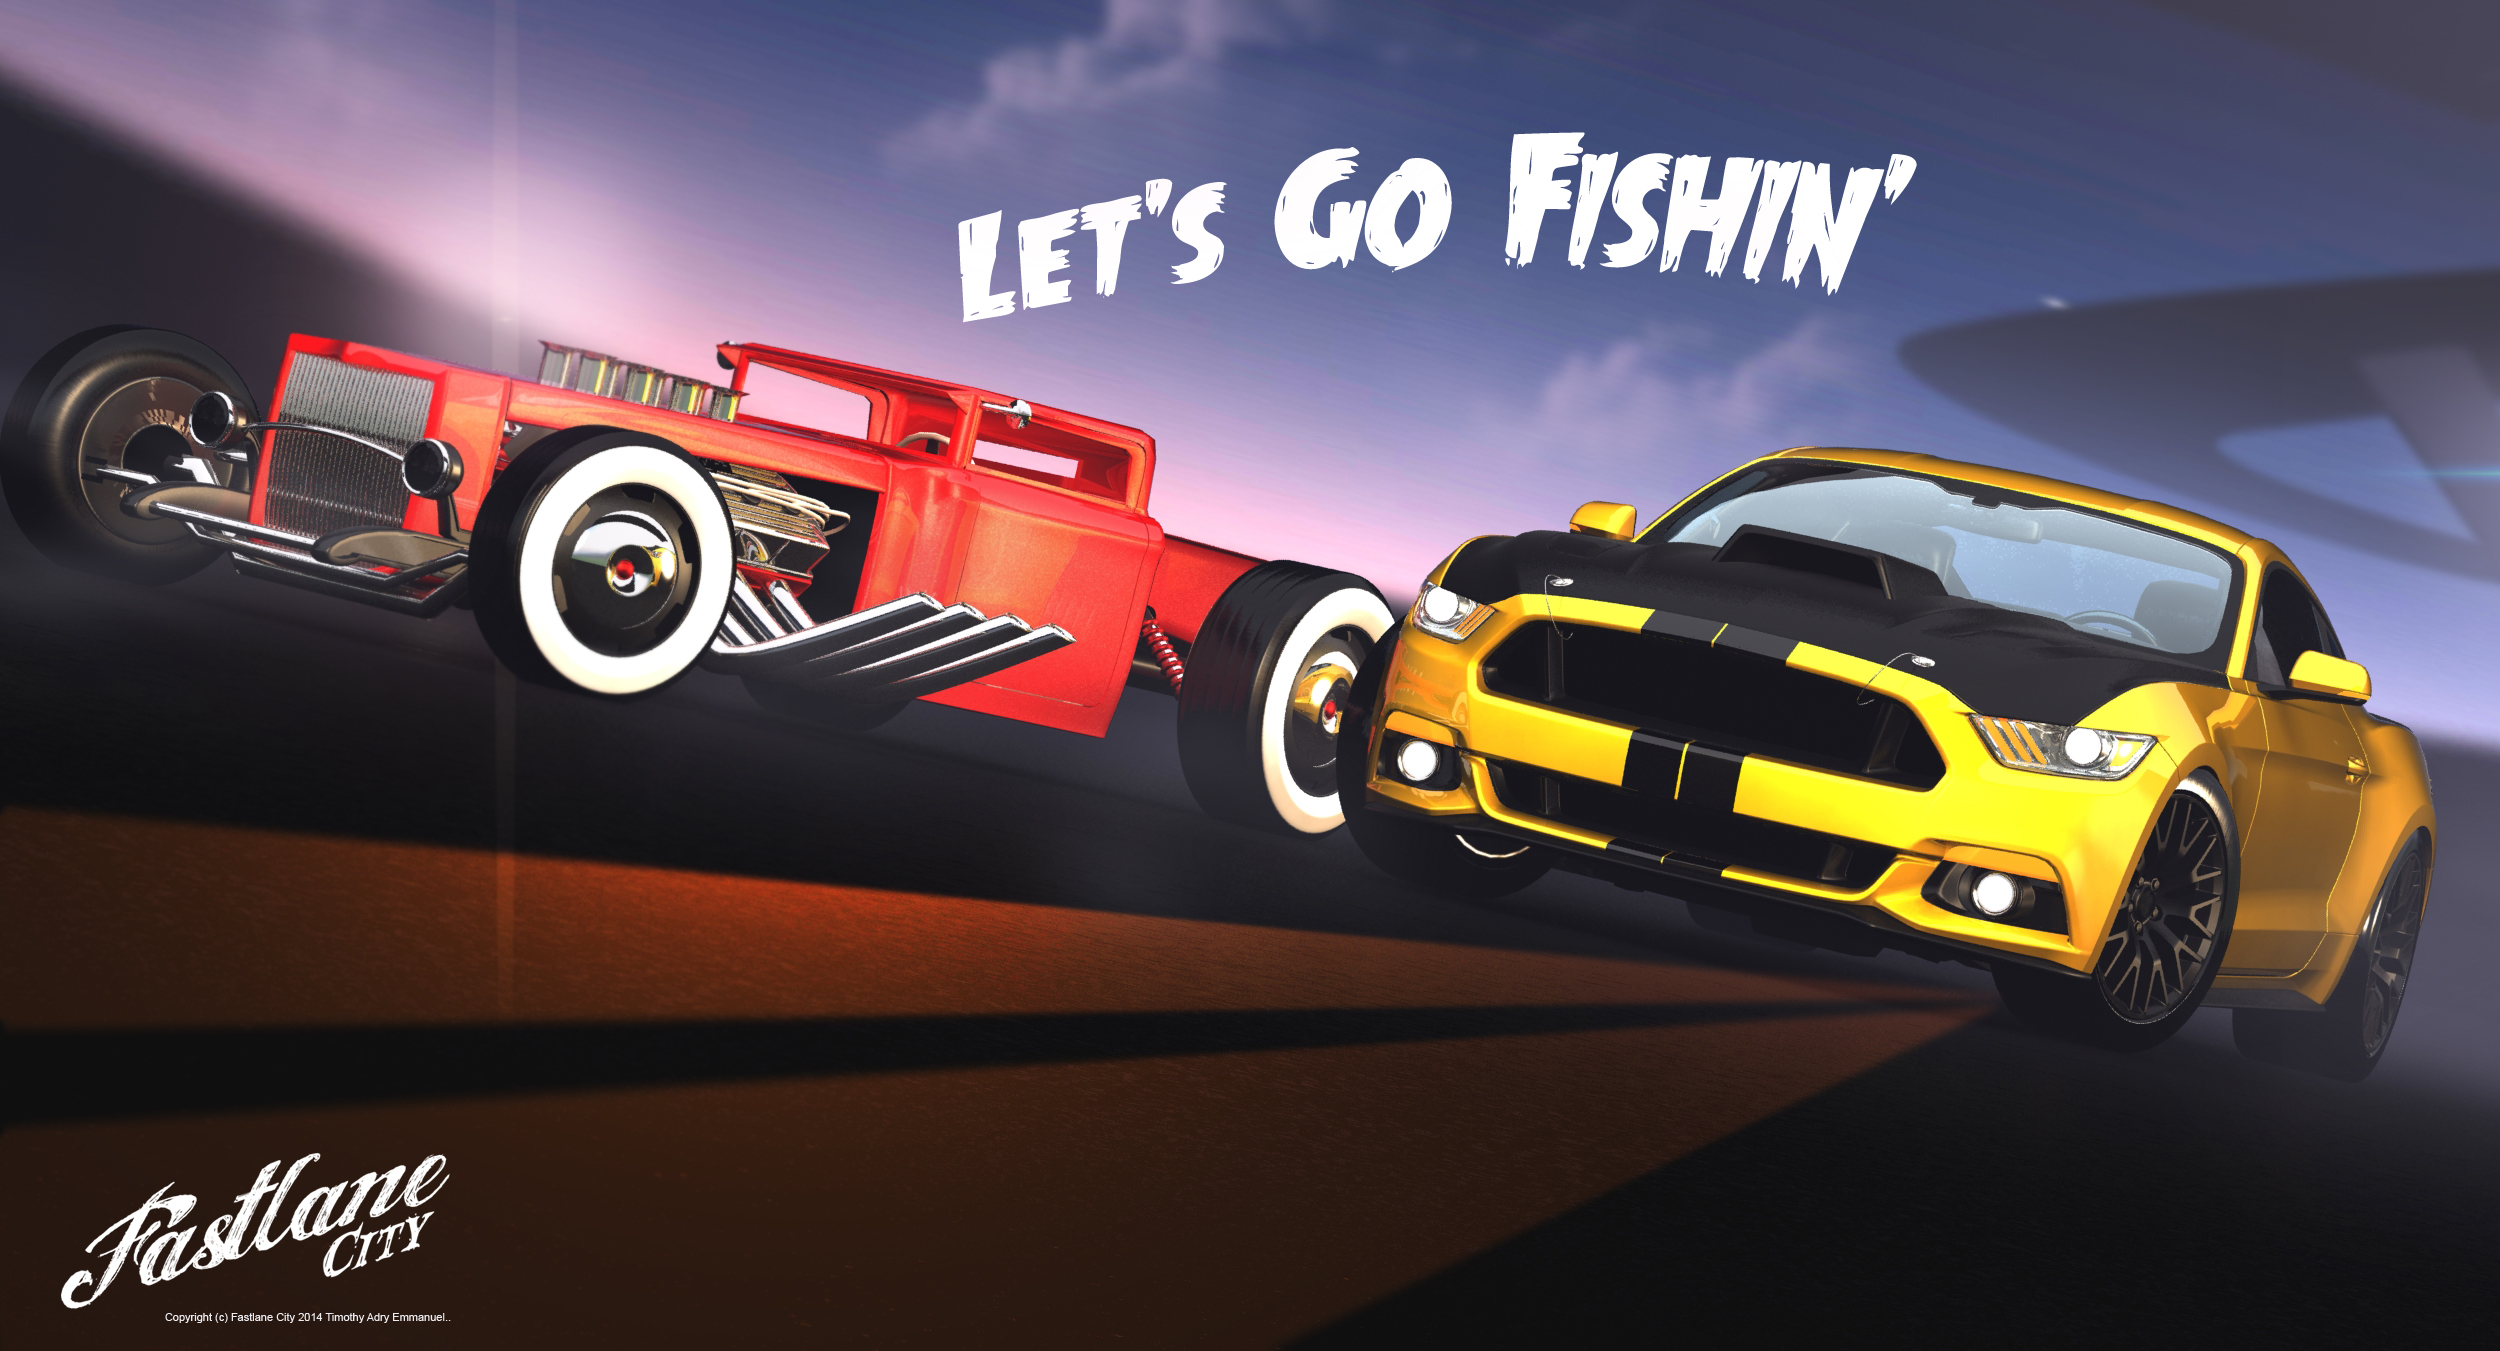 Fastlane City - LET'S GO FISHIN' by Adry53